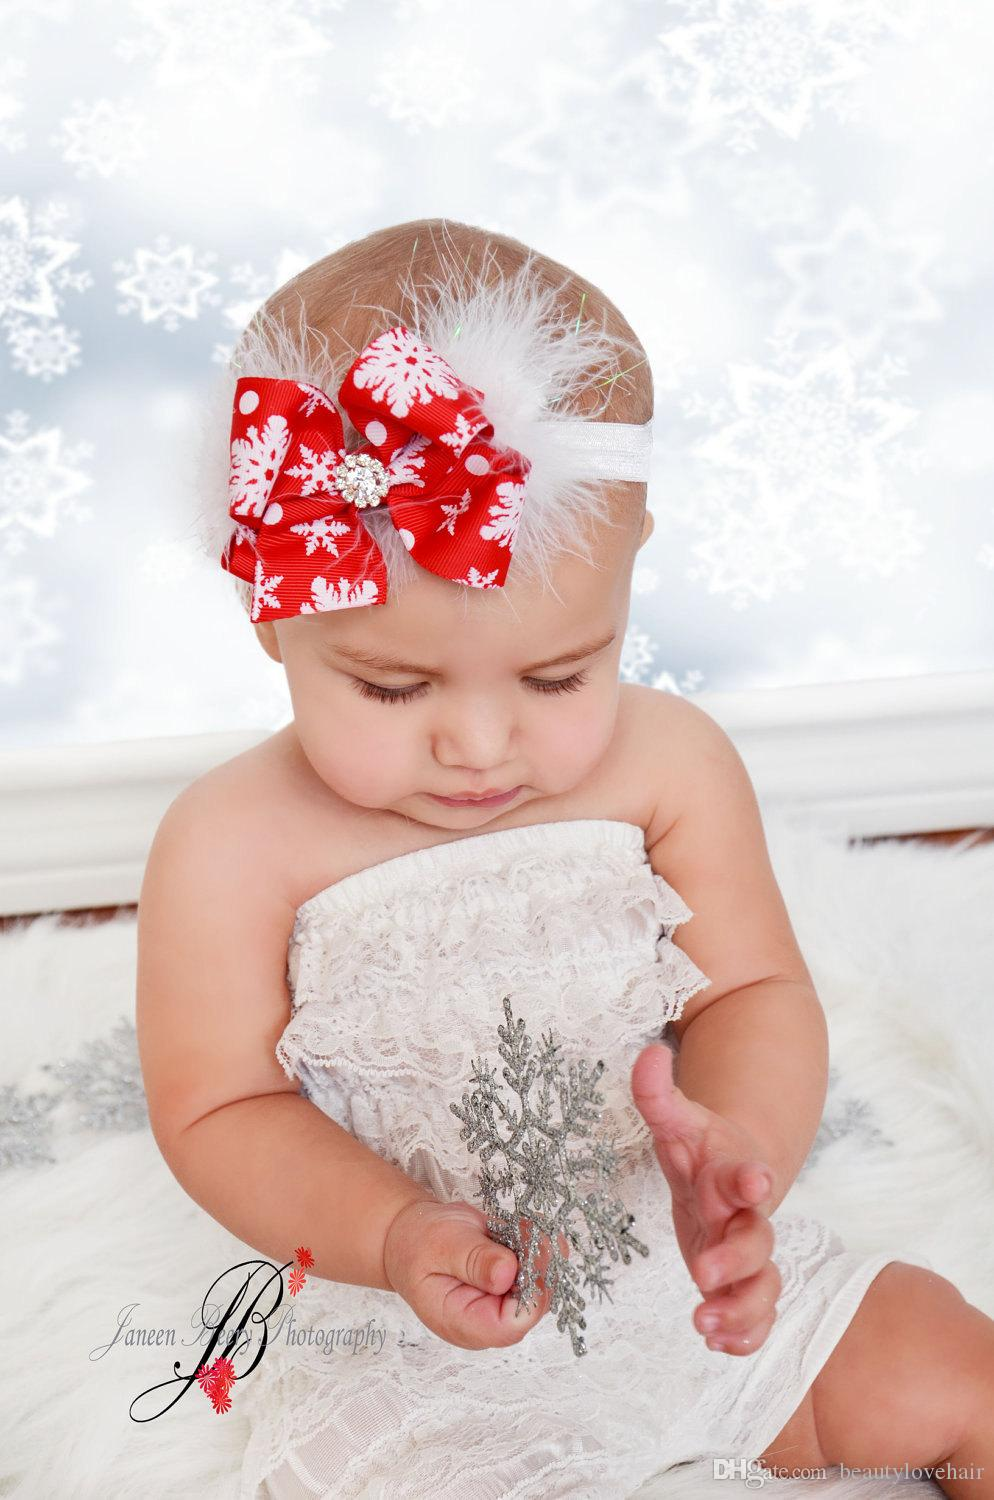 Make Baby's Holiday sparkle with our beautiful line of Christmas Headbands and Hair Bows. Our Baby Girl Headbands are perfect for holiday photographs and parties. All Pink Bowtique's Baby Headbands are designed and made by hand and will be the perfect Christmas headband accessory for those special parties and holiday events! You'll love our gorgeous high quality baby girl headbands that .